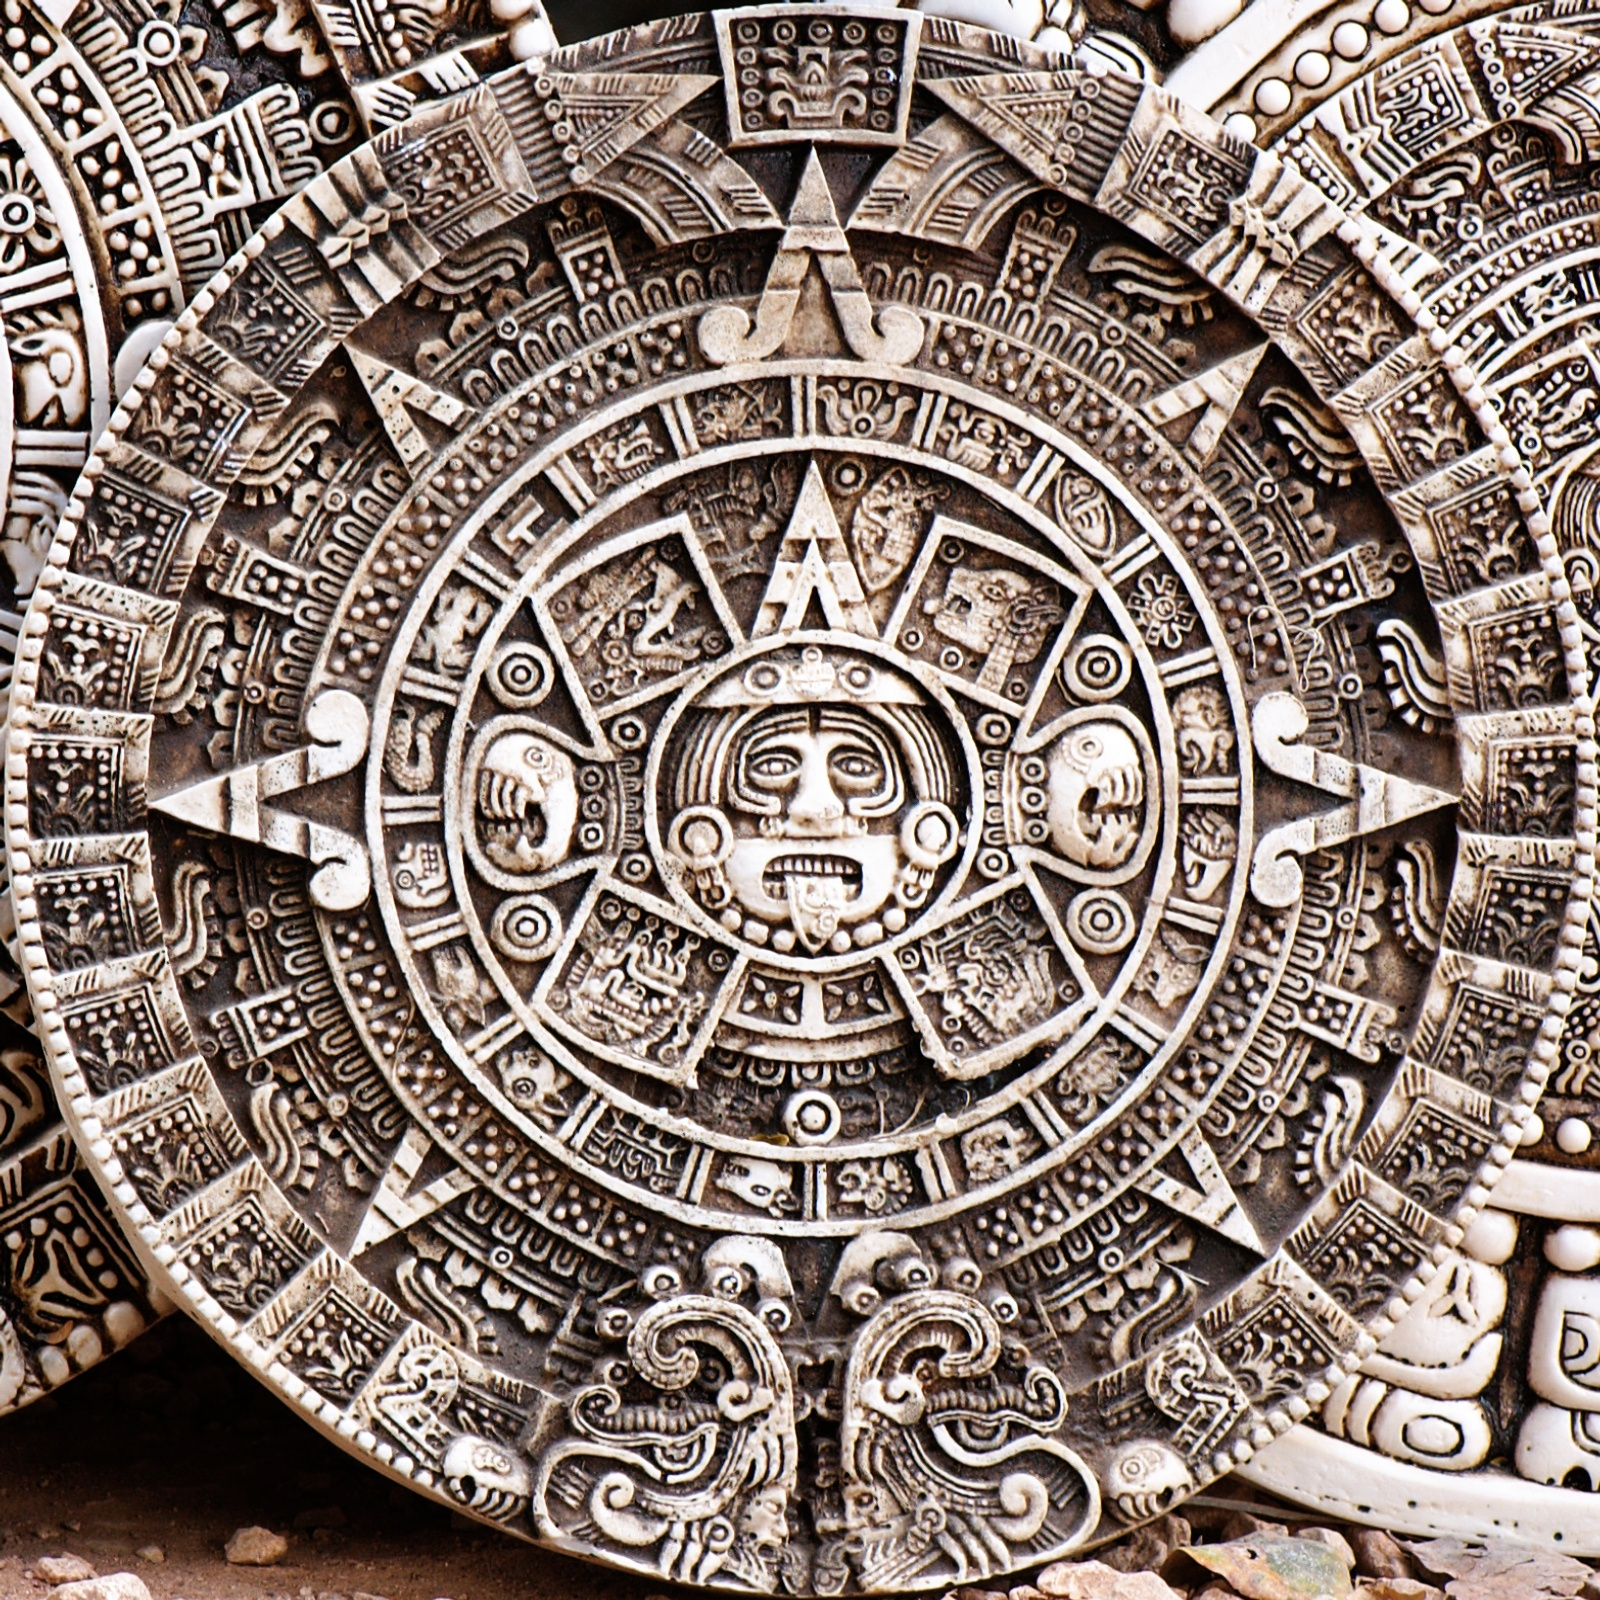 mayan architecture and astronomy - photo #33